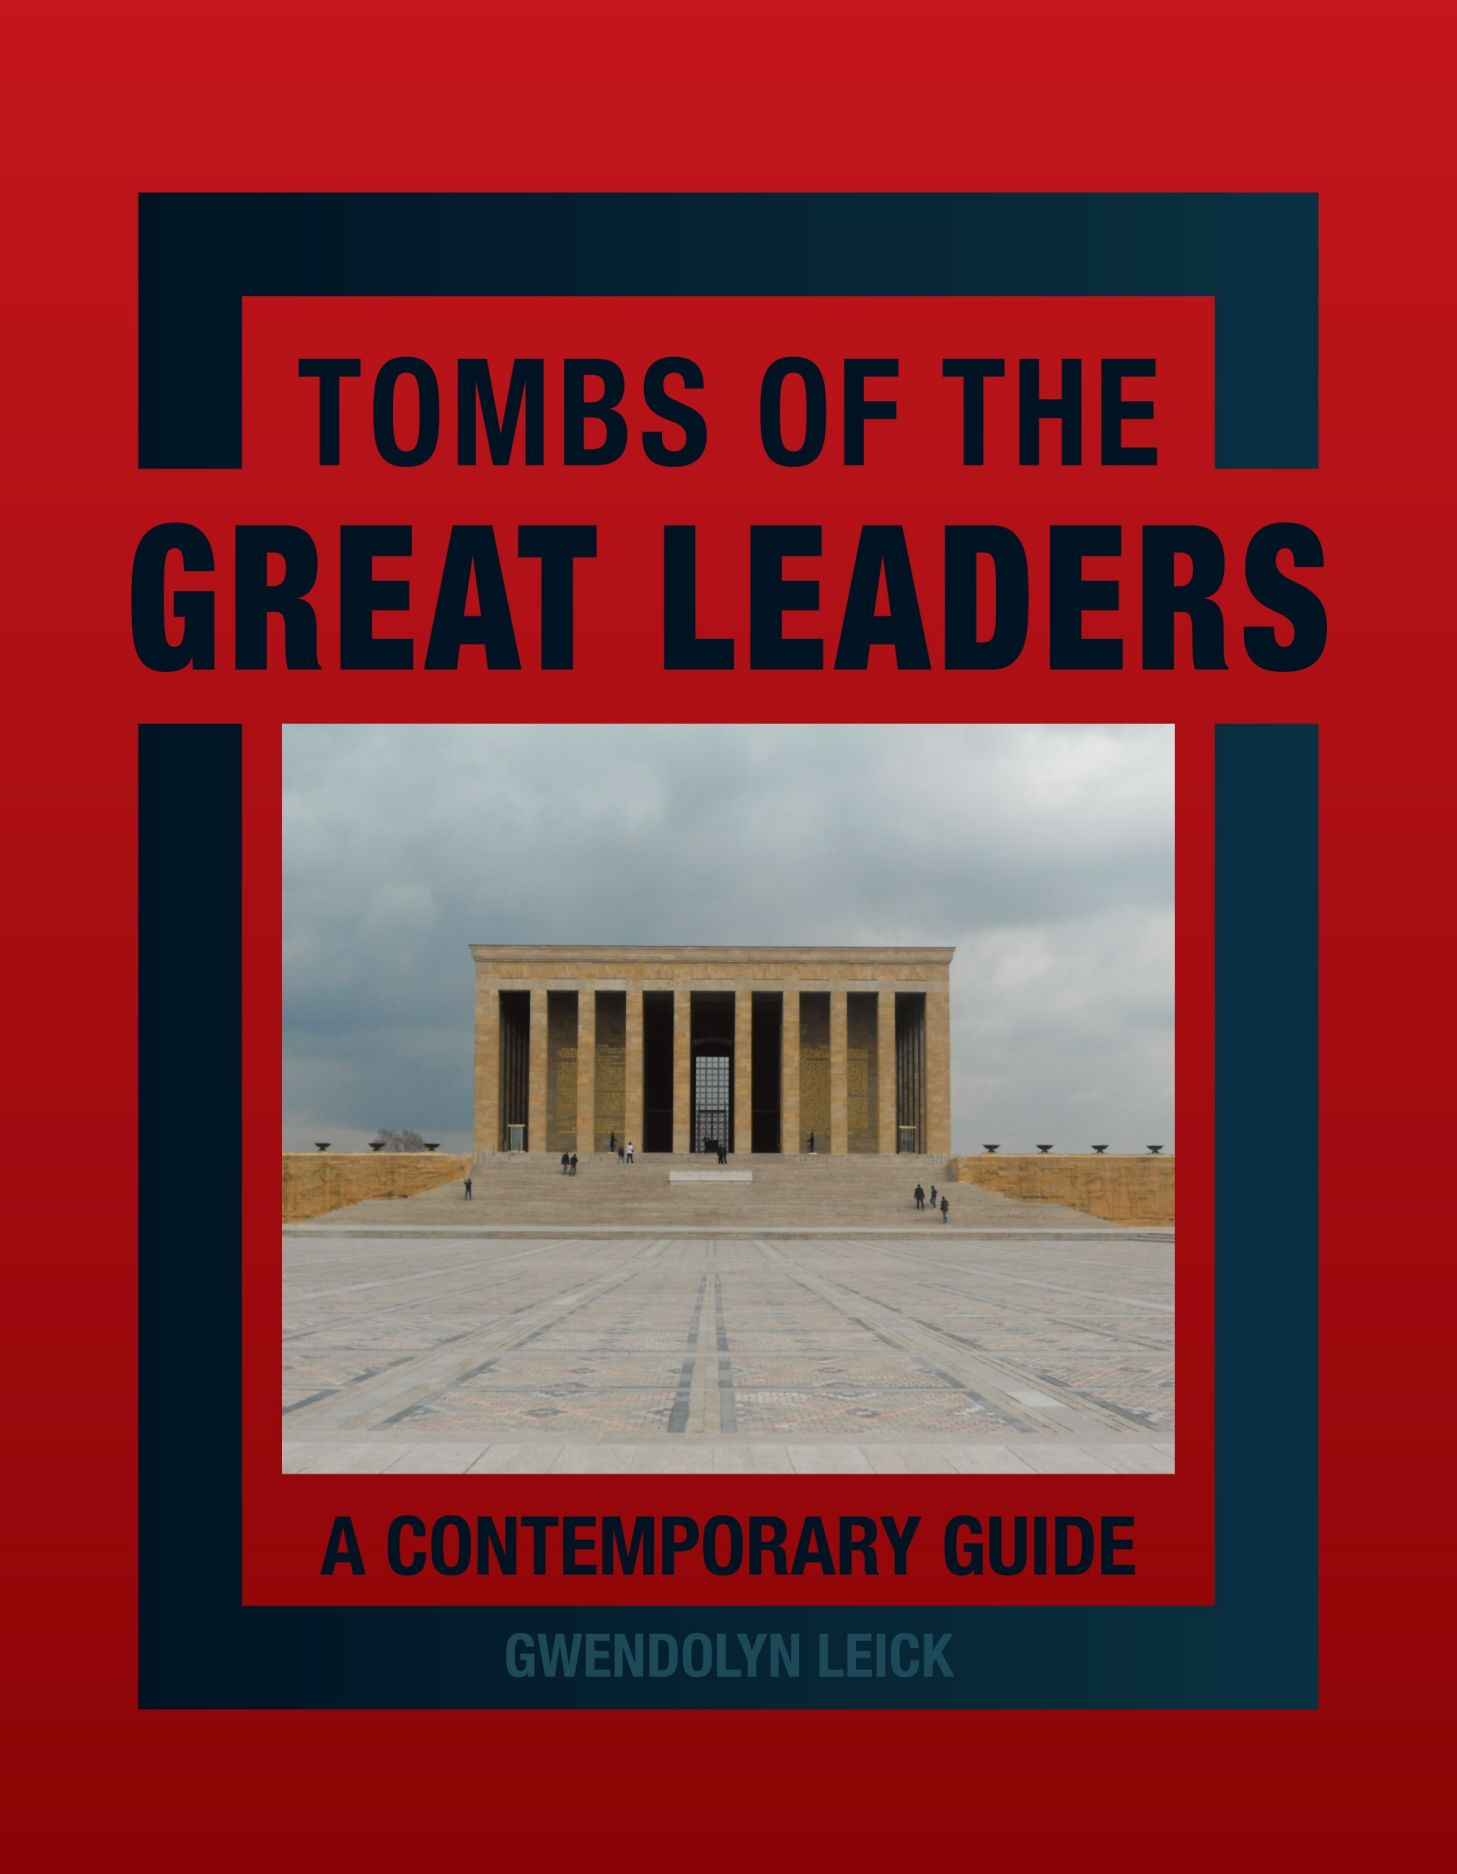 Tombs of the Great Leaders: A Contemporary Guide